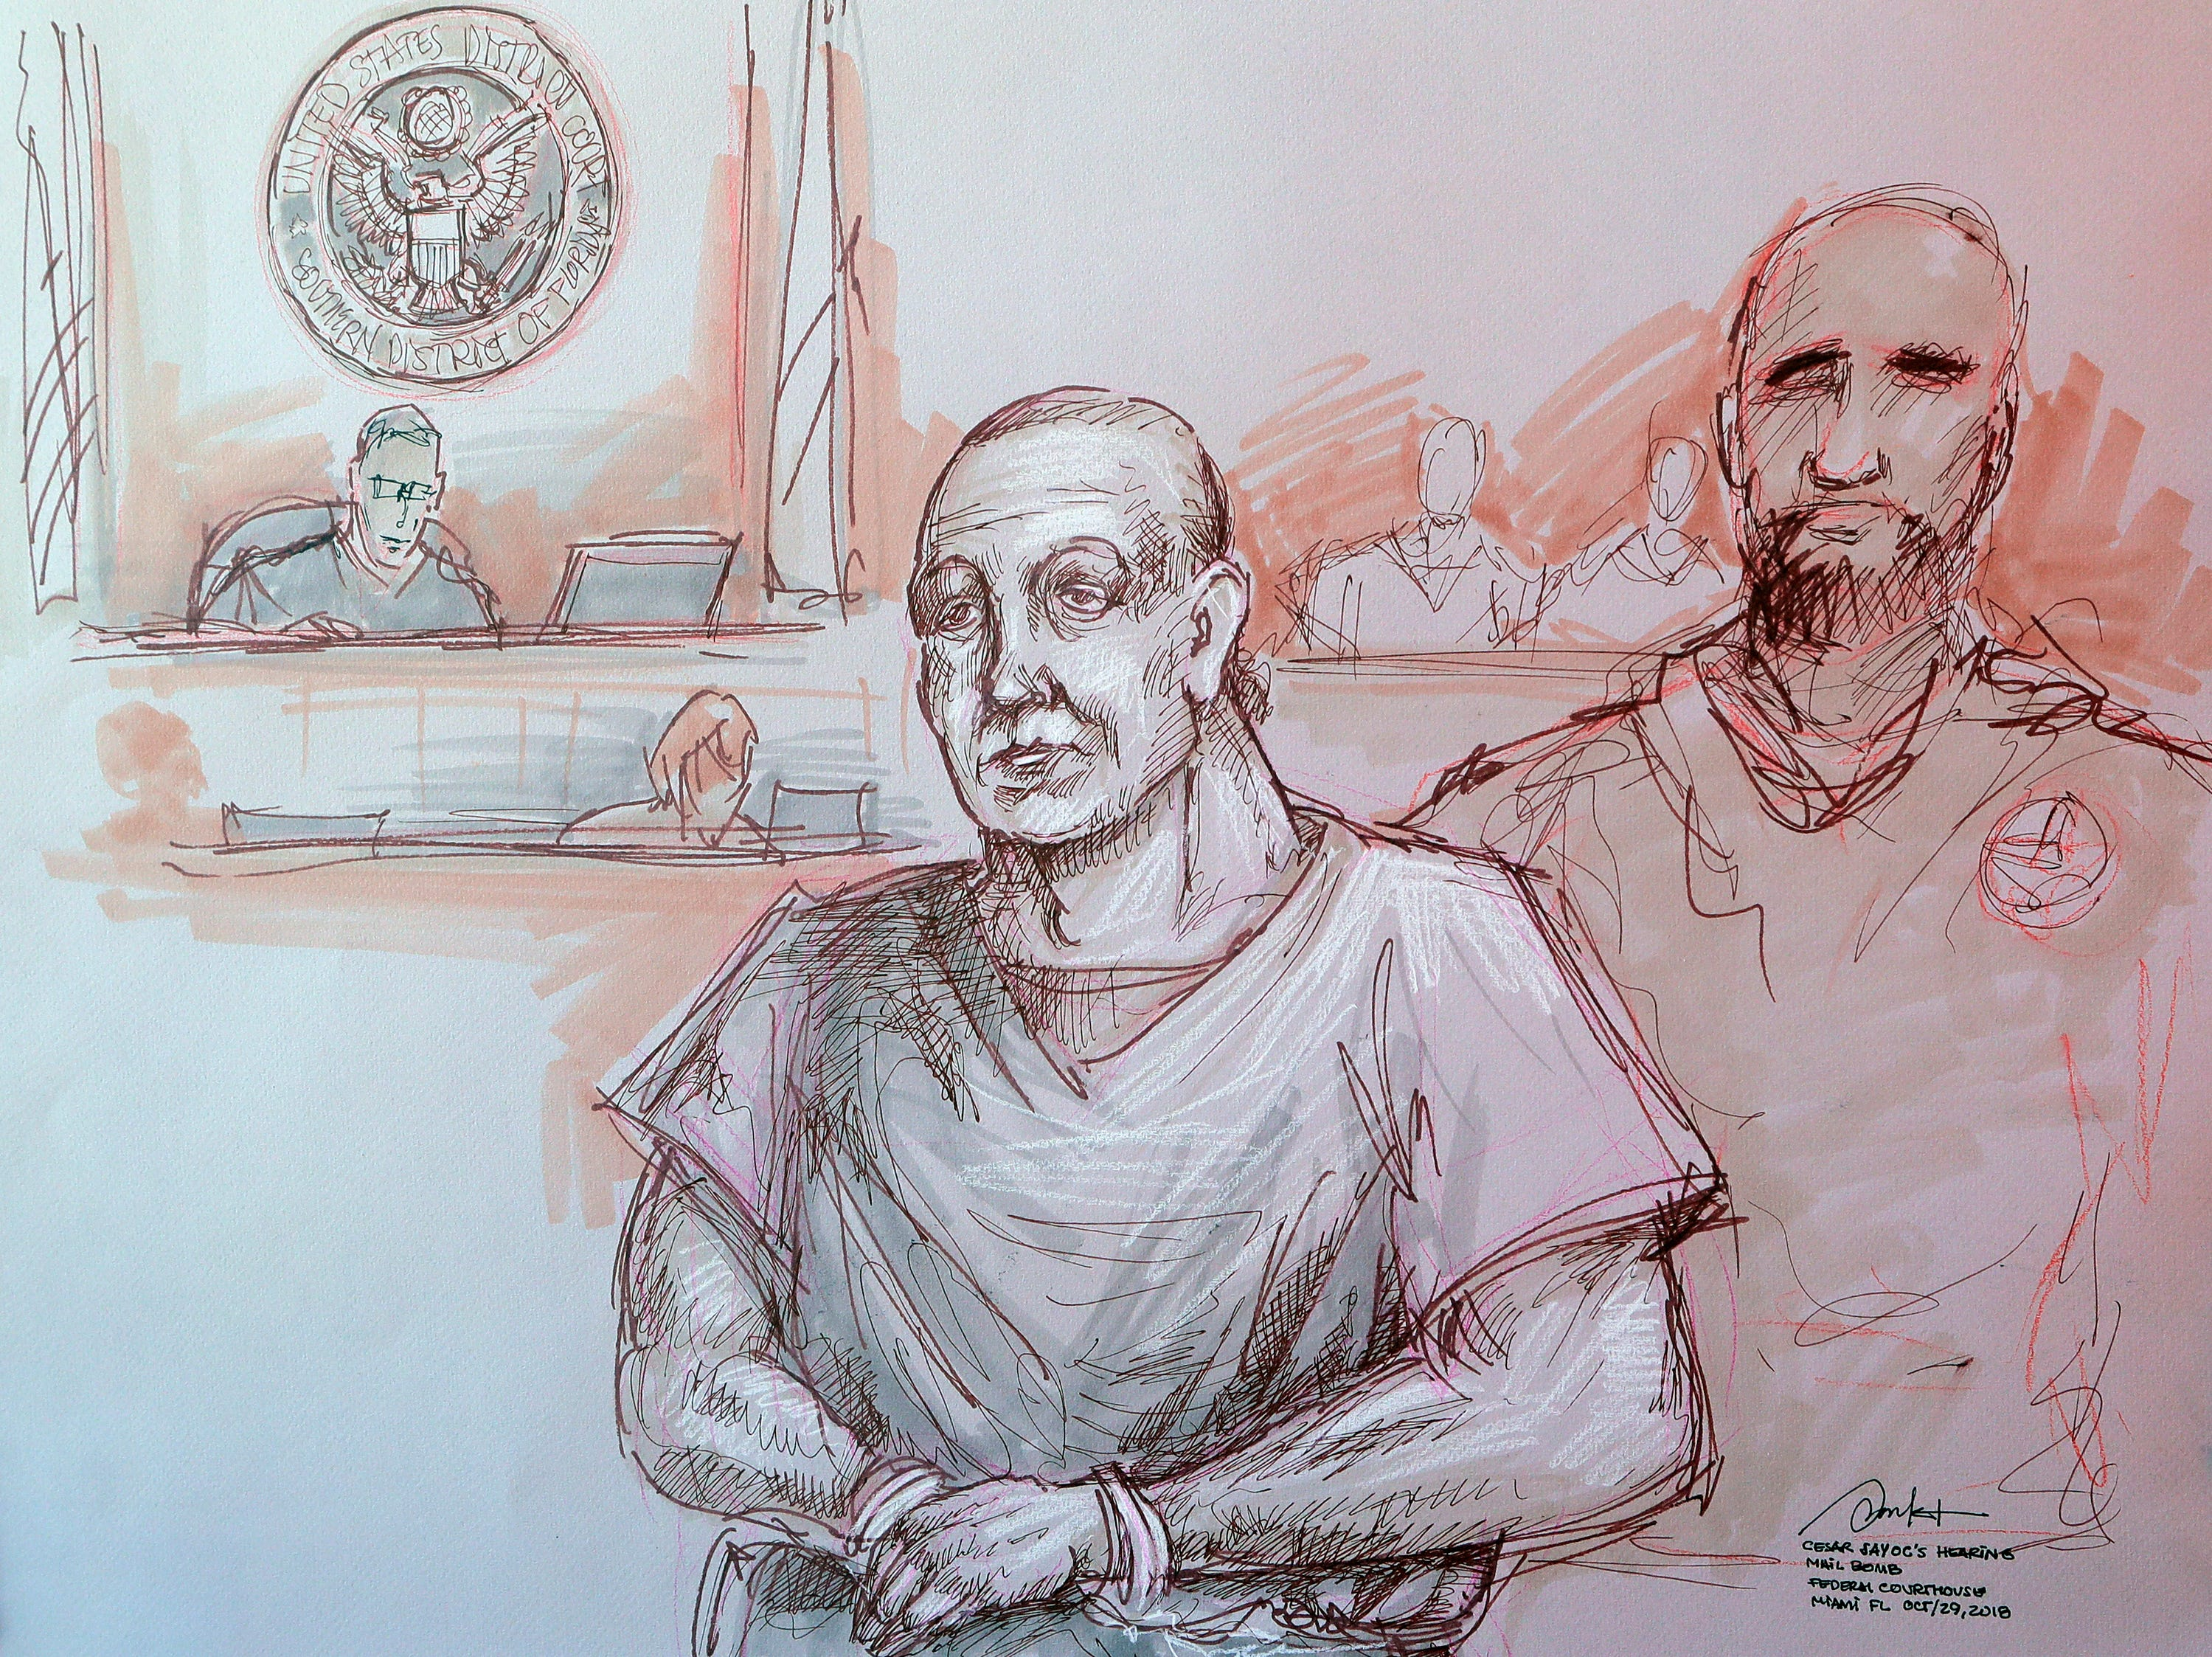 Pipe bomb suspect Cesar Sayoc indicted; charged with using 'weapon of mass destruction'